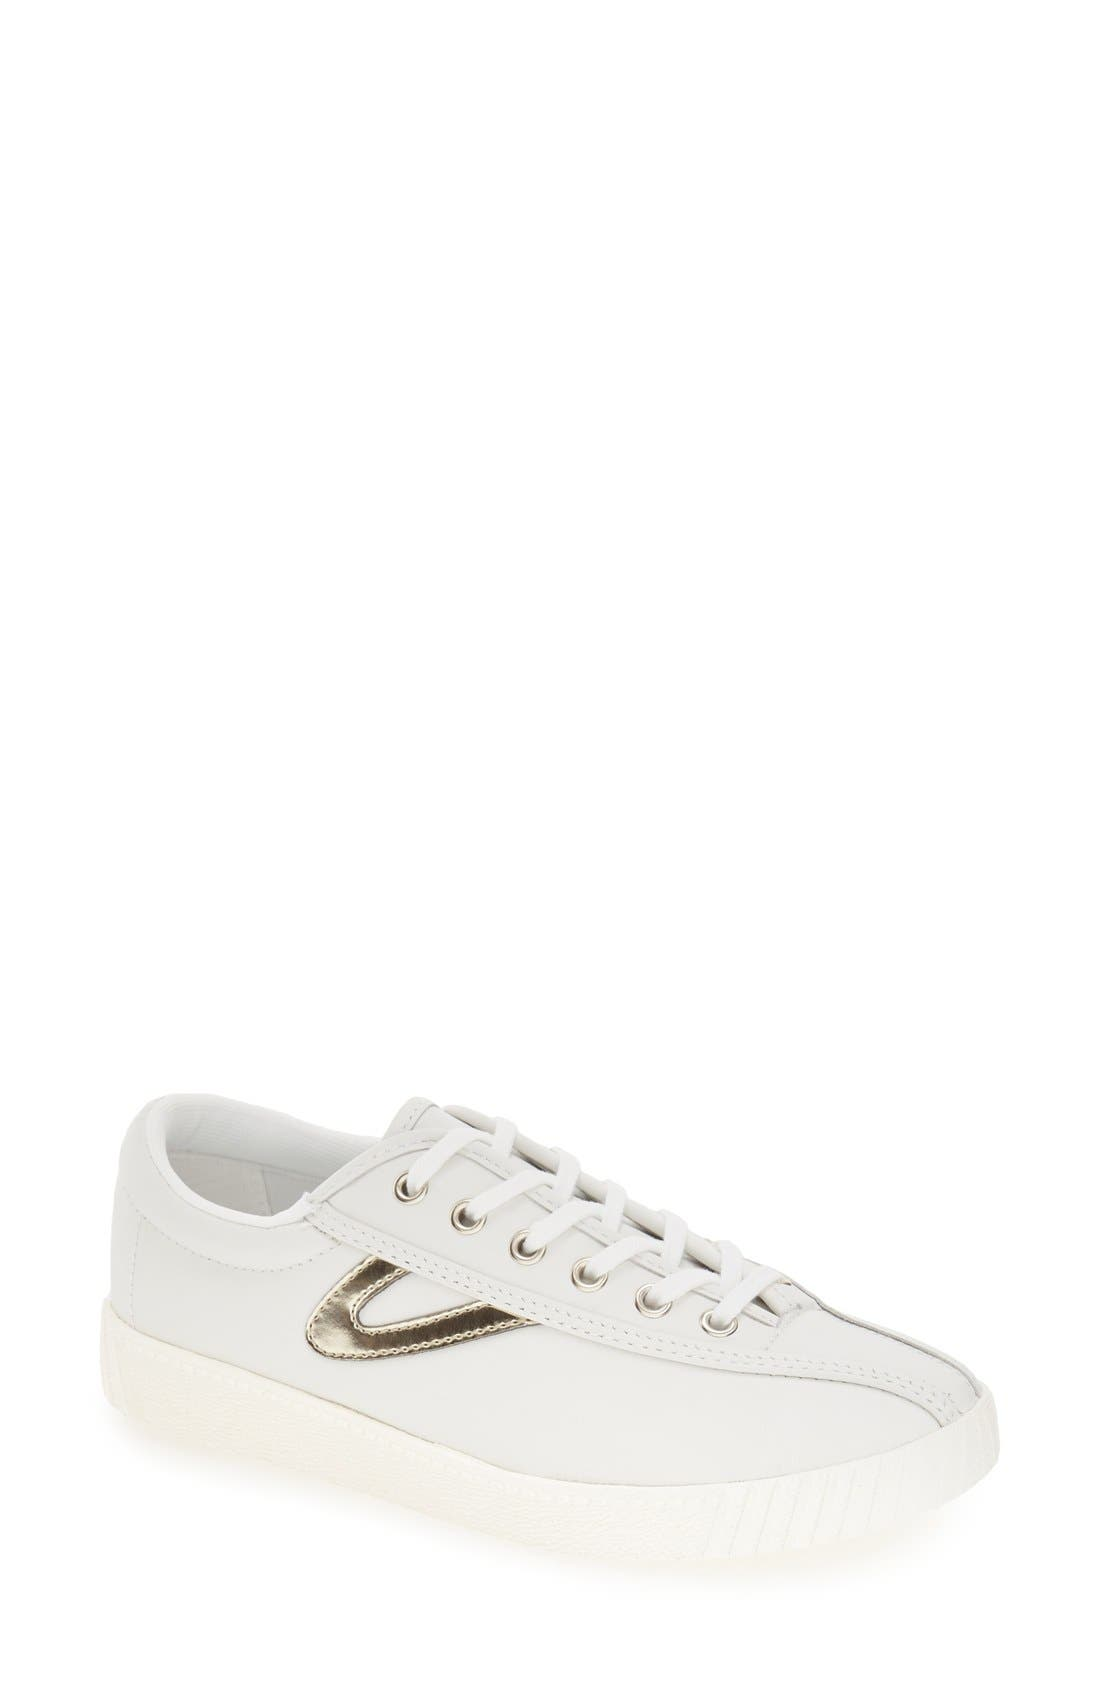 'Nylite2 Plus' Sneaker,                         Main,                         color, WHITE/ GOLD